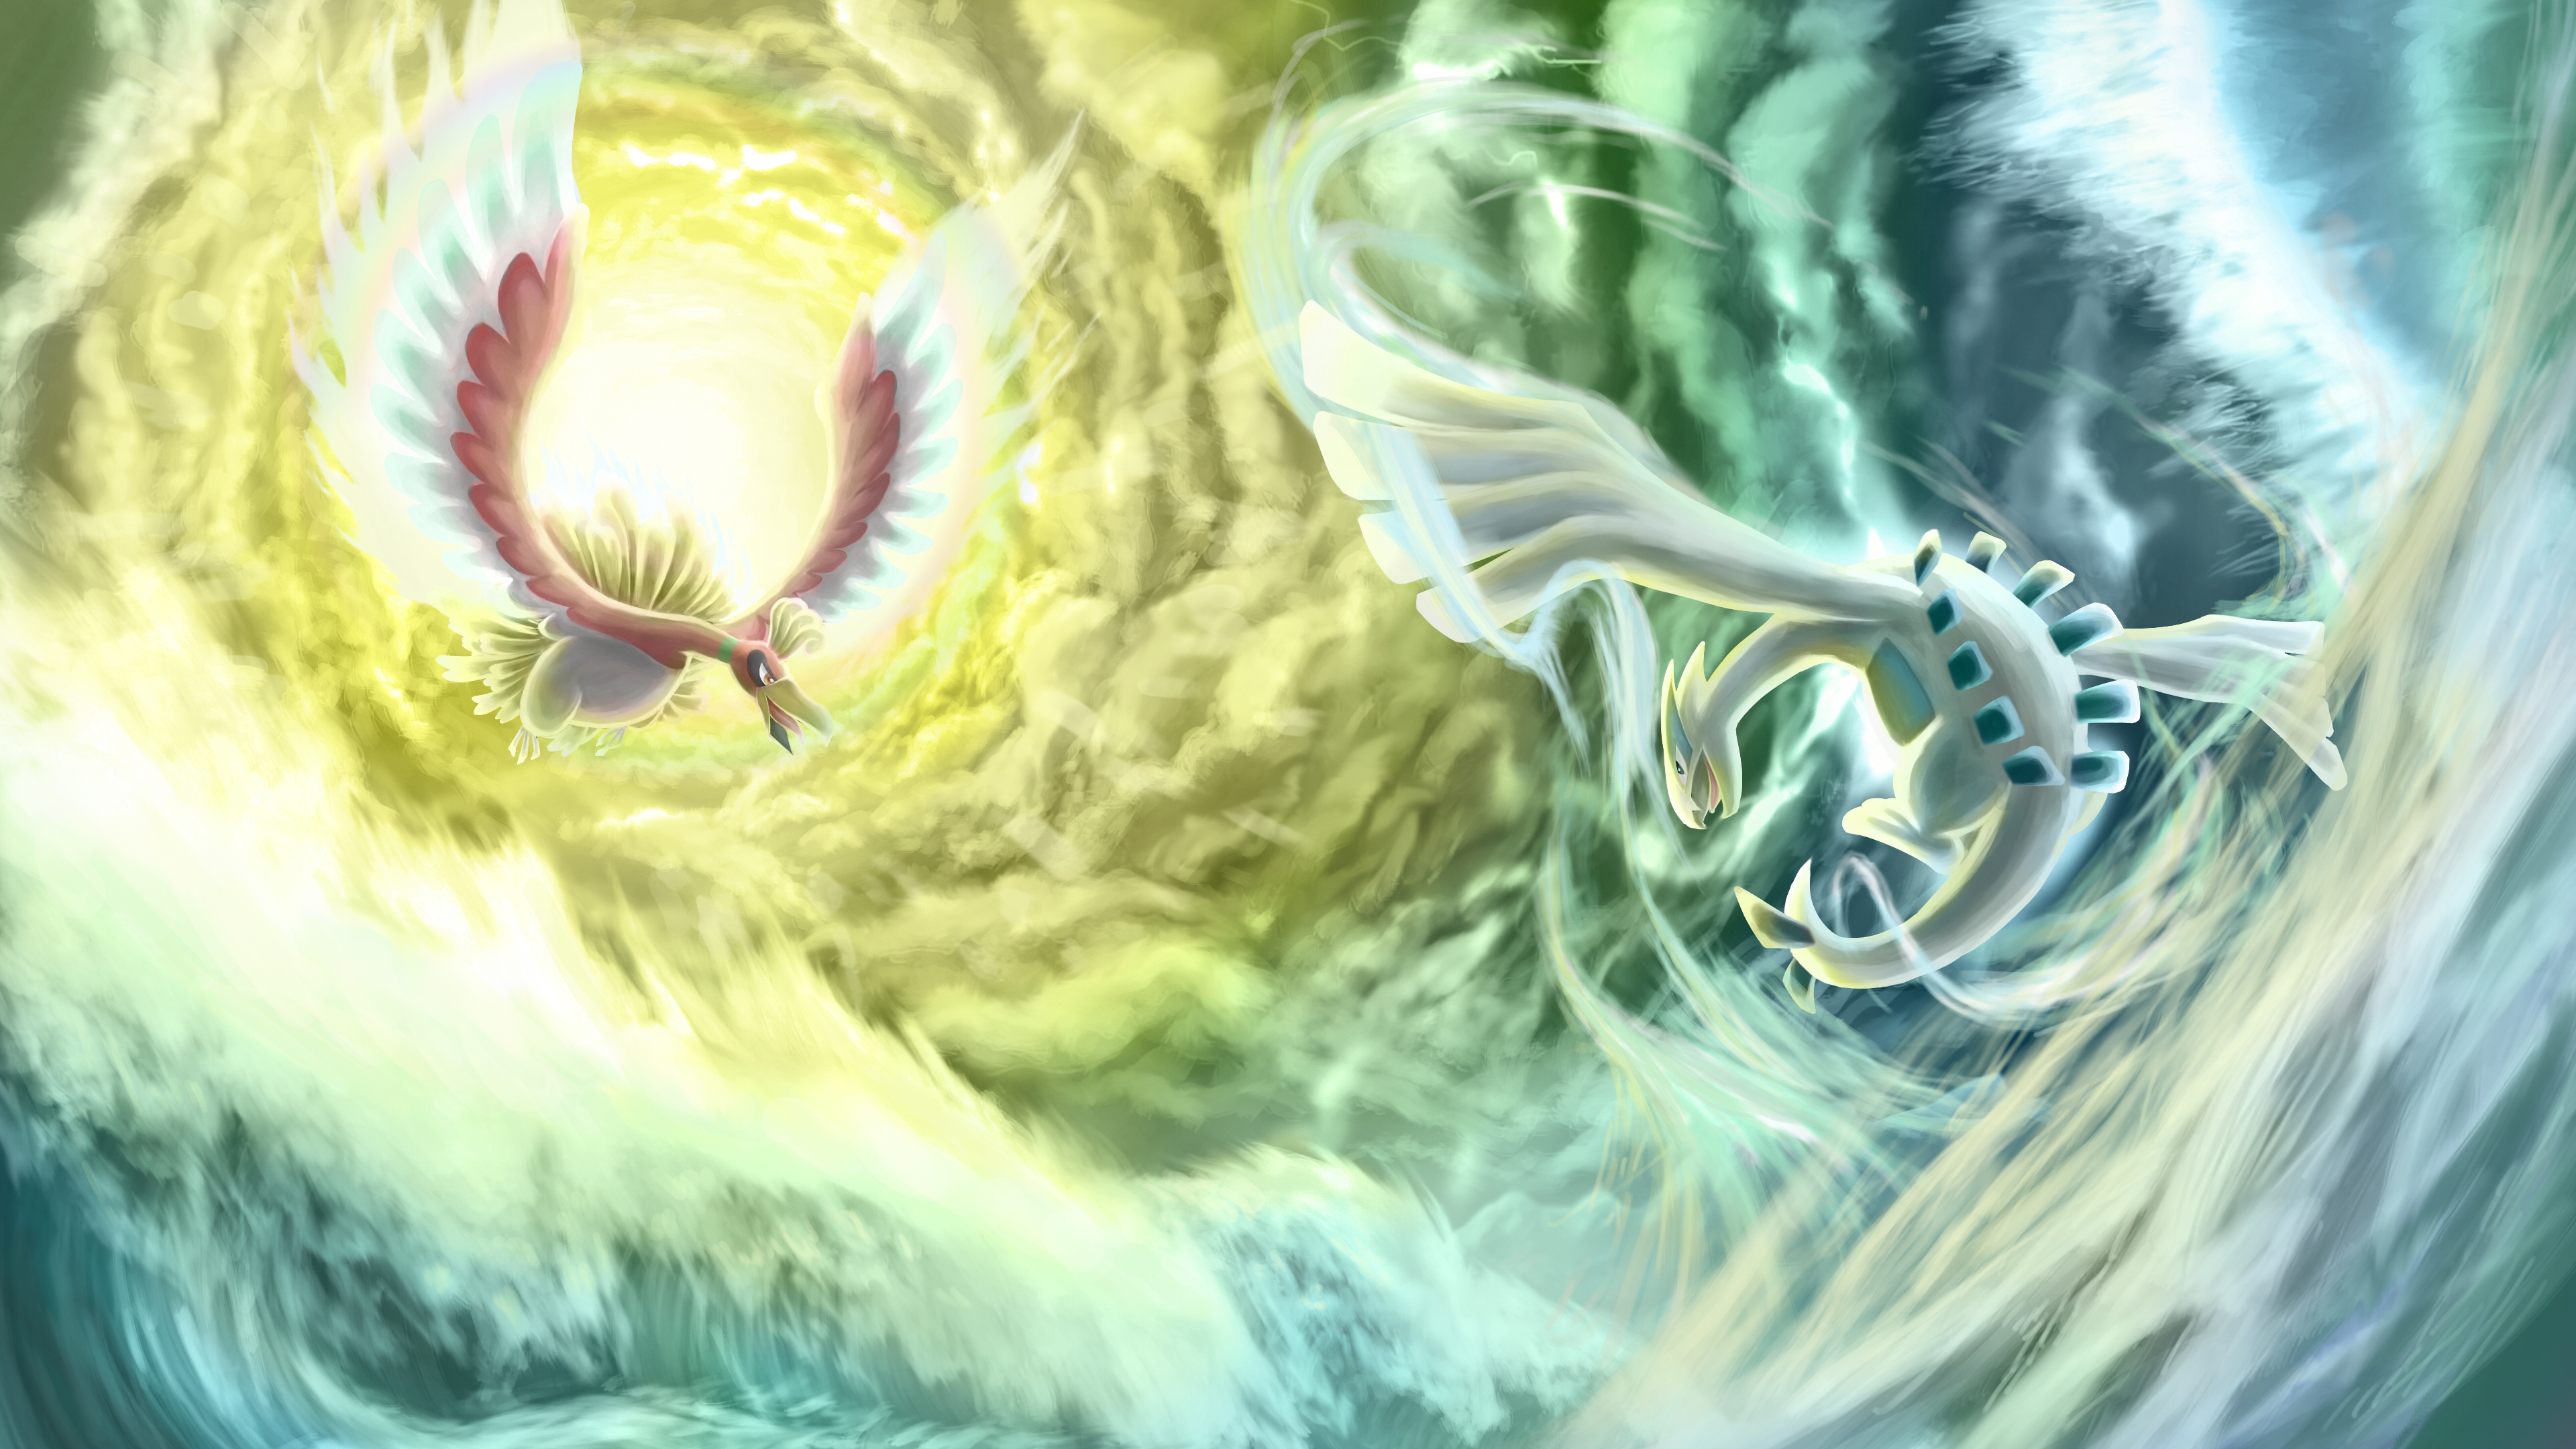 47+] HO OH and Lugia Wallpaper on